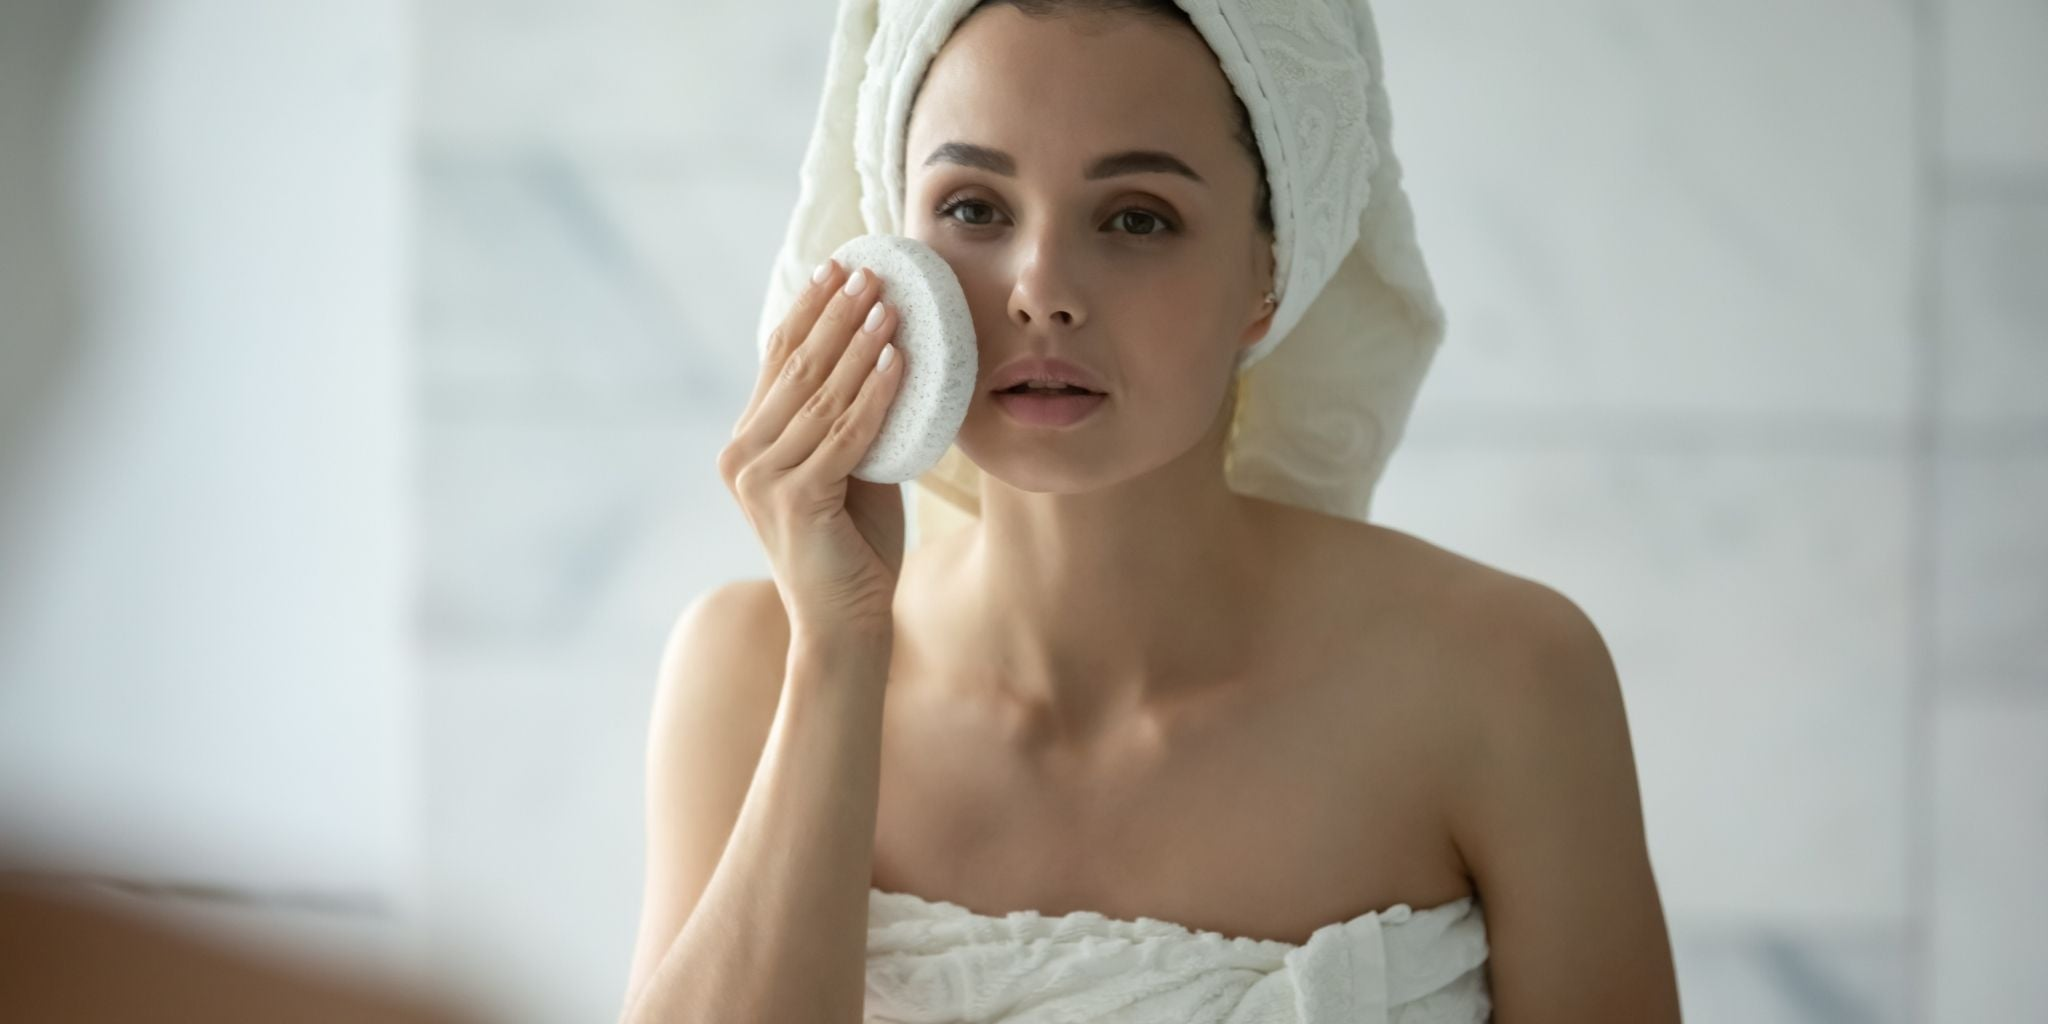 How to deal with sensitive facial skin